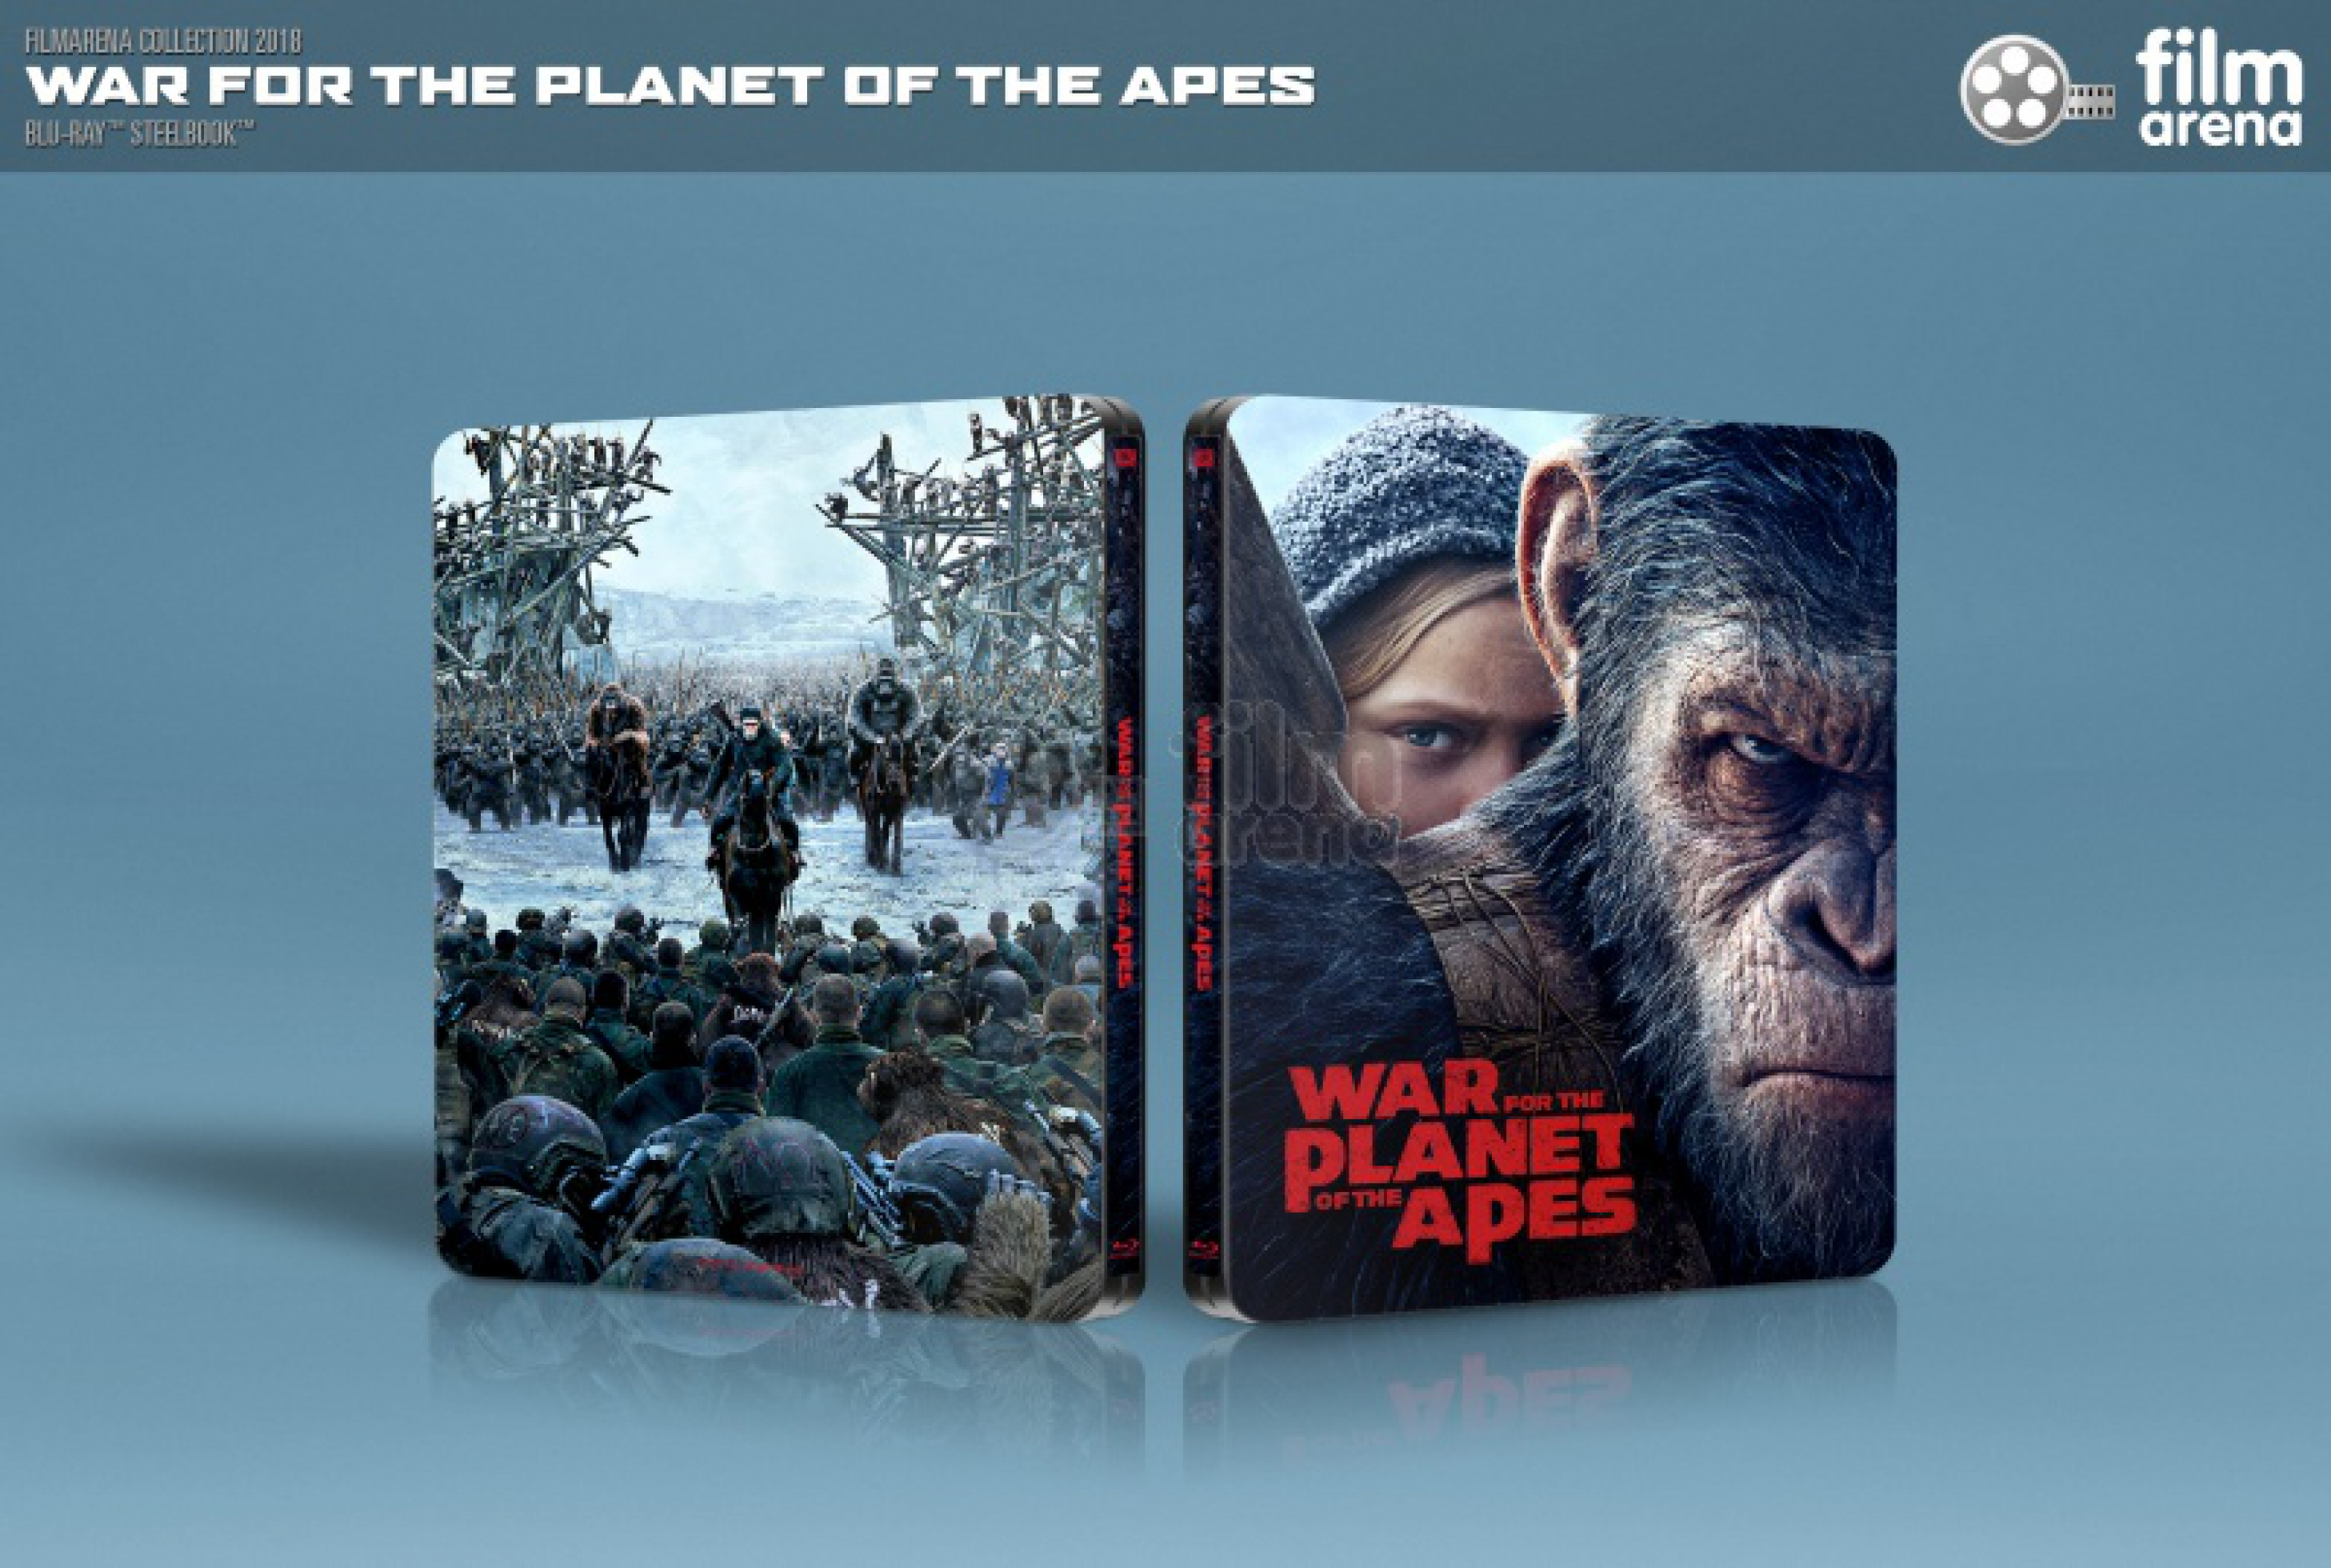 Planet der Affen Survival  3D HD-Filmportal Edition 5 FAC unnumbered